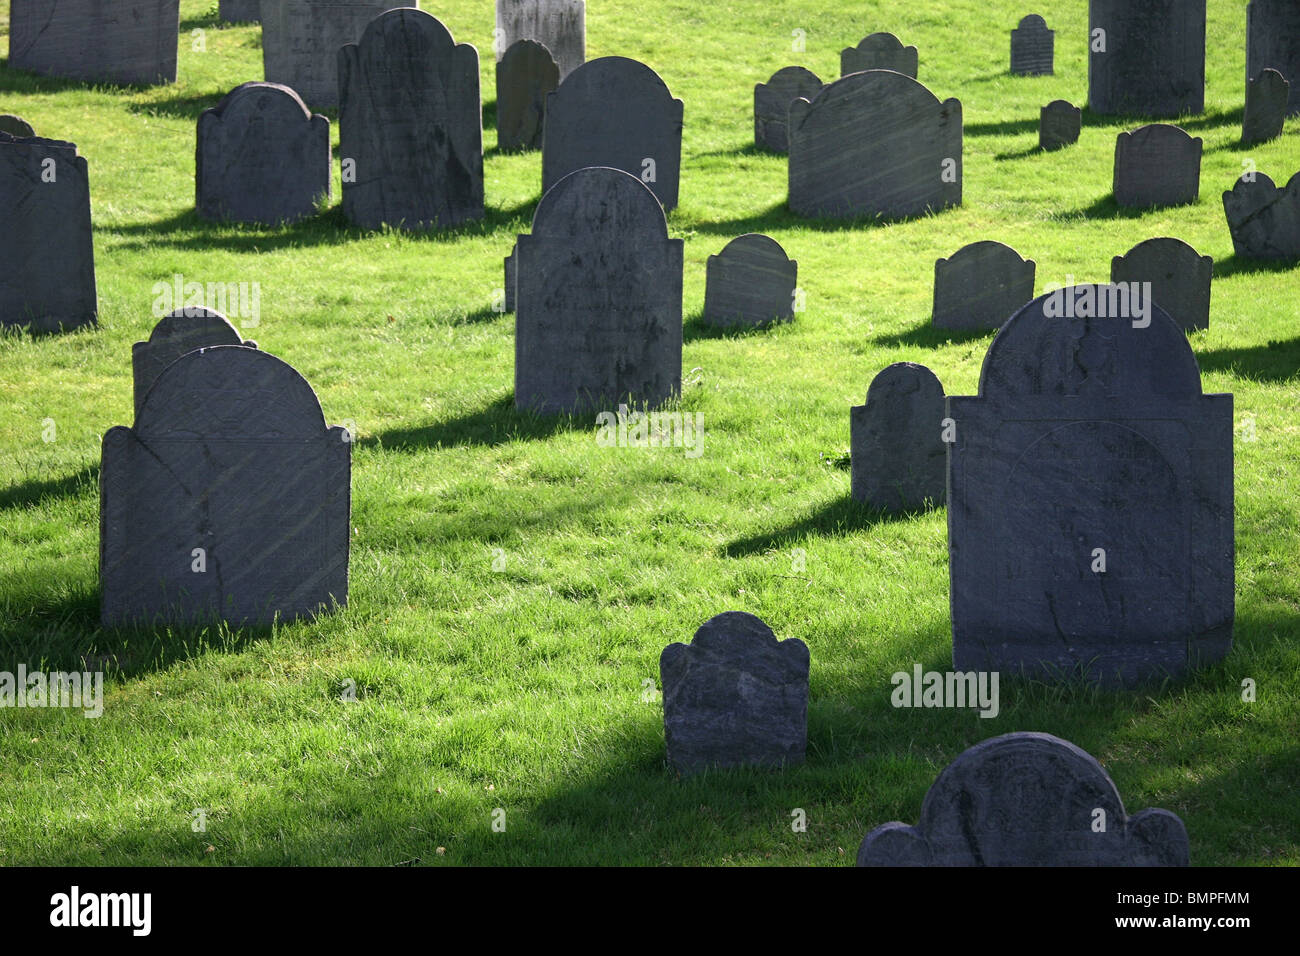 Early 18th century colonial graveyard in Concord, Massachusetts, USA. - Stock Image